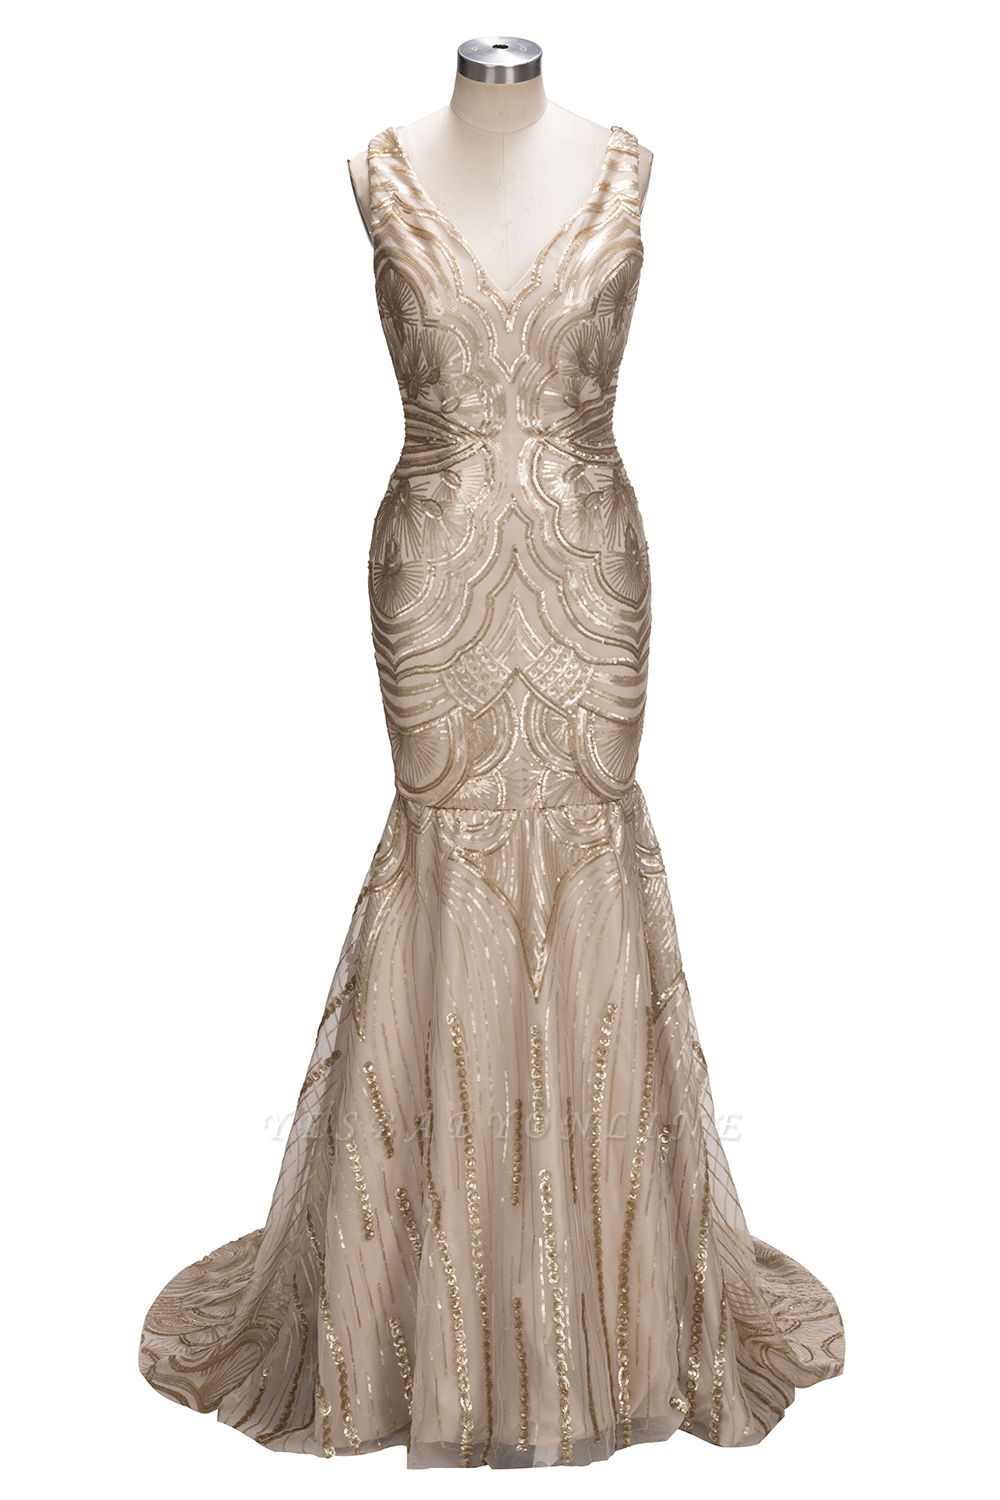 V-neck Sequins Gold Sexy Deep Sleeveless Mermaid Champagne Evening Gown